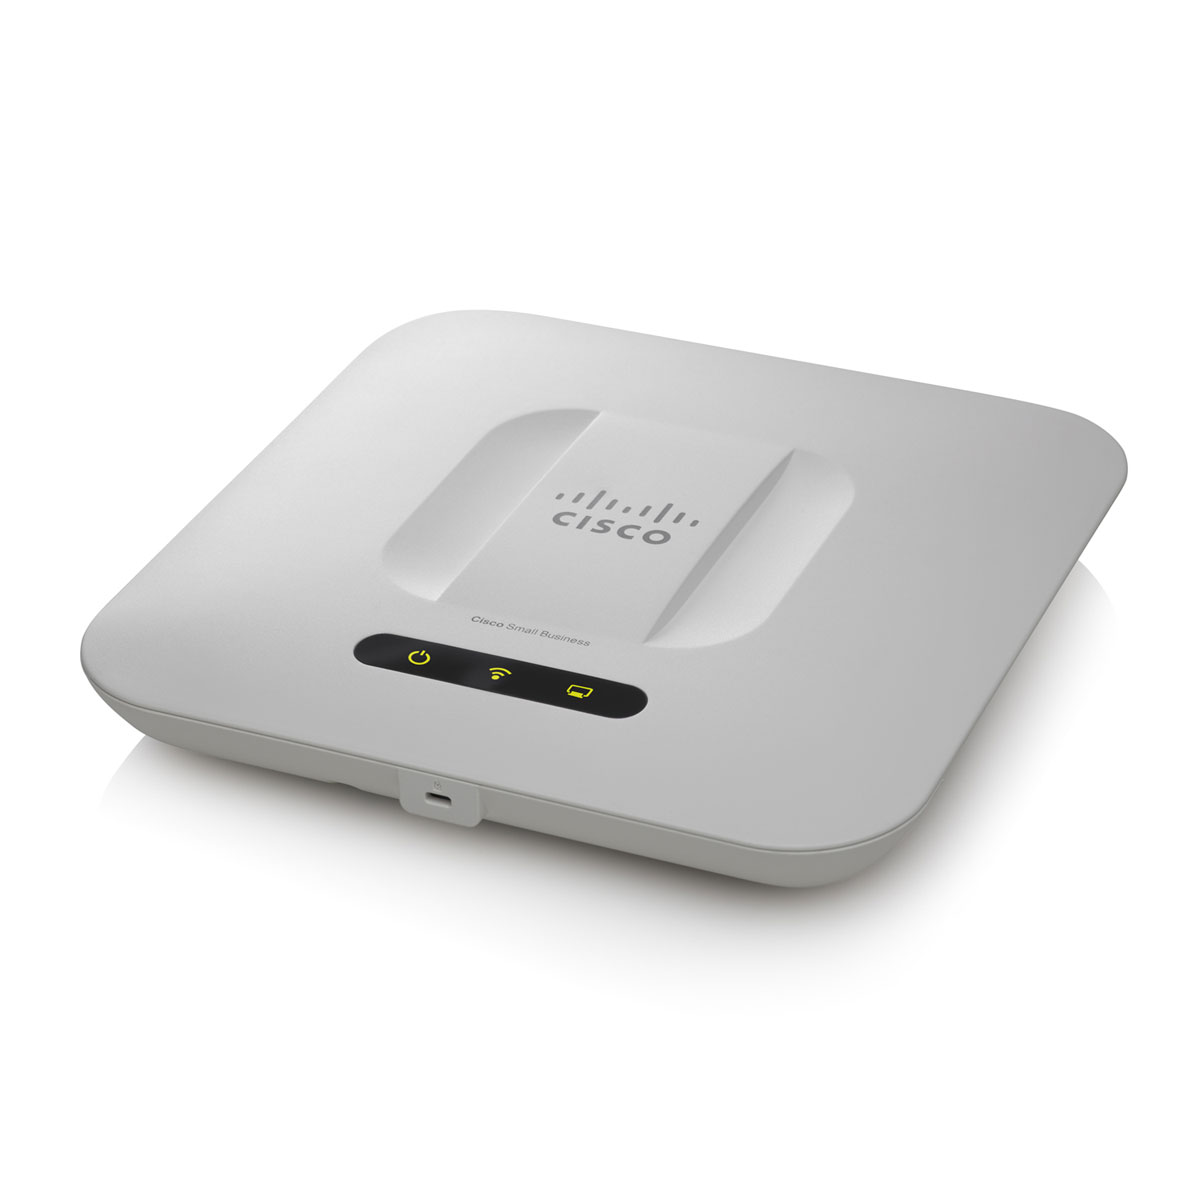 Cisco Small Business WAP371- 802.11ac (425/950 MB) - Cybertek.fr - 1